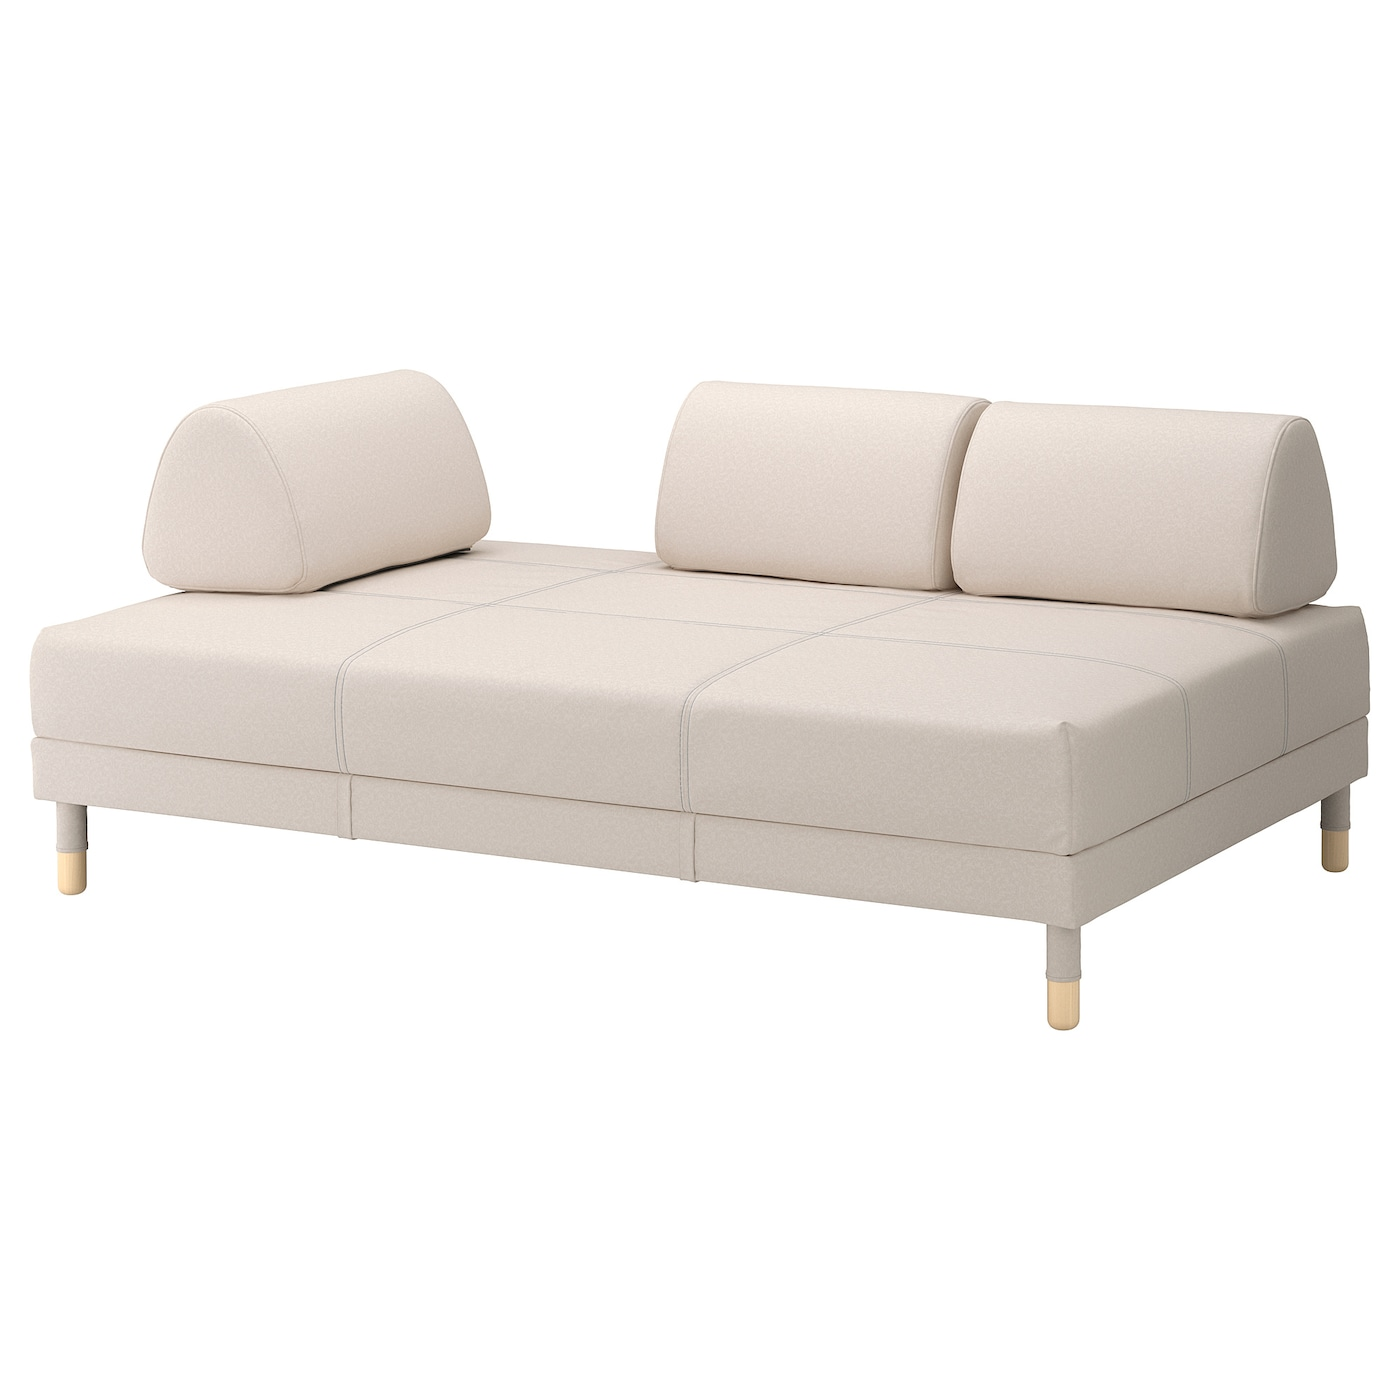 flottebo sofa bed vissle beige 120 cm ikea. Black Bedroom Furniture Sets. Home Design Ideas